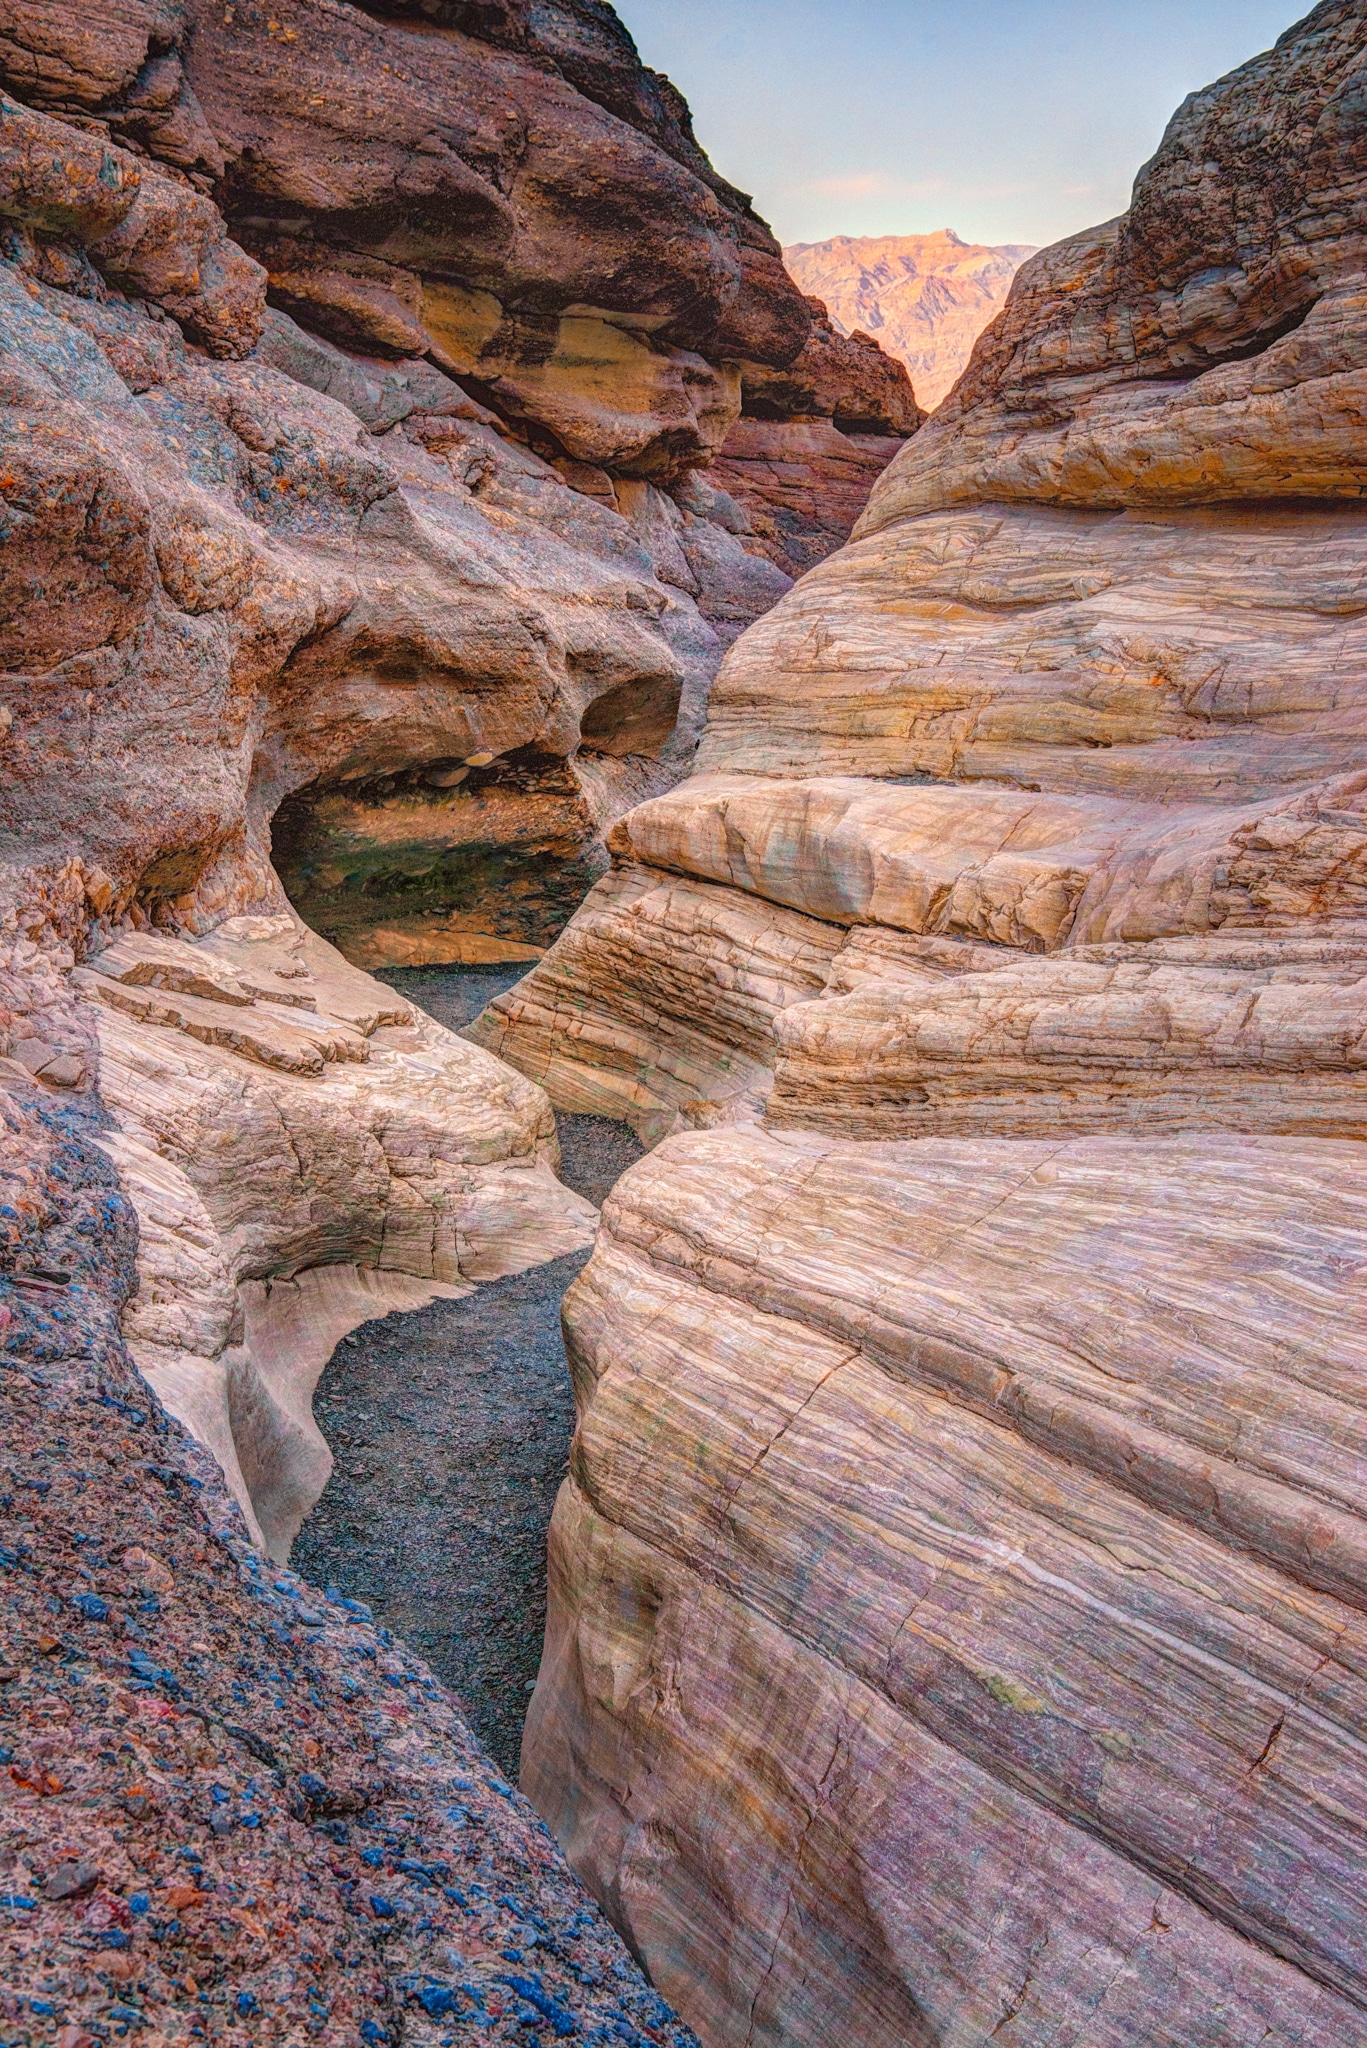 Looking up this wineglass-type canyon, you can see how water has carved a sinuous path through the Noonday dolomite of Mosaic Canyon, located a short distance up a dirt road just west of Stovepipe Wells in Death Valley National Park, California.